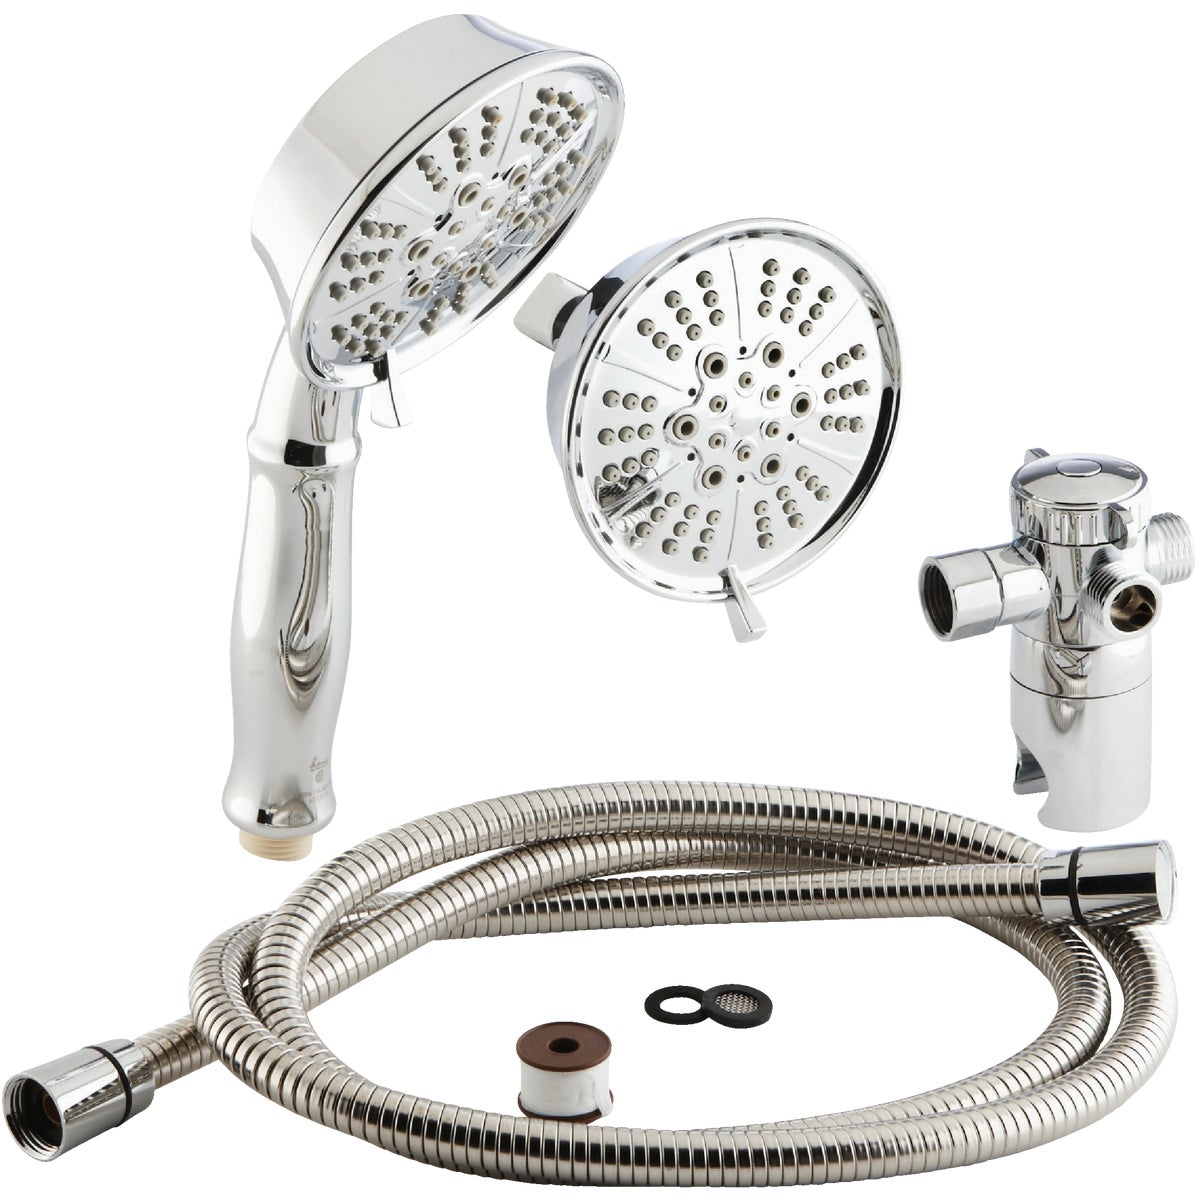 CHR 5-SET COMBO SHOWER - P68000+P30400 by Do it Best